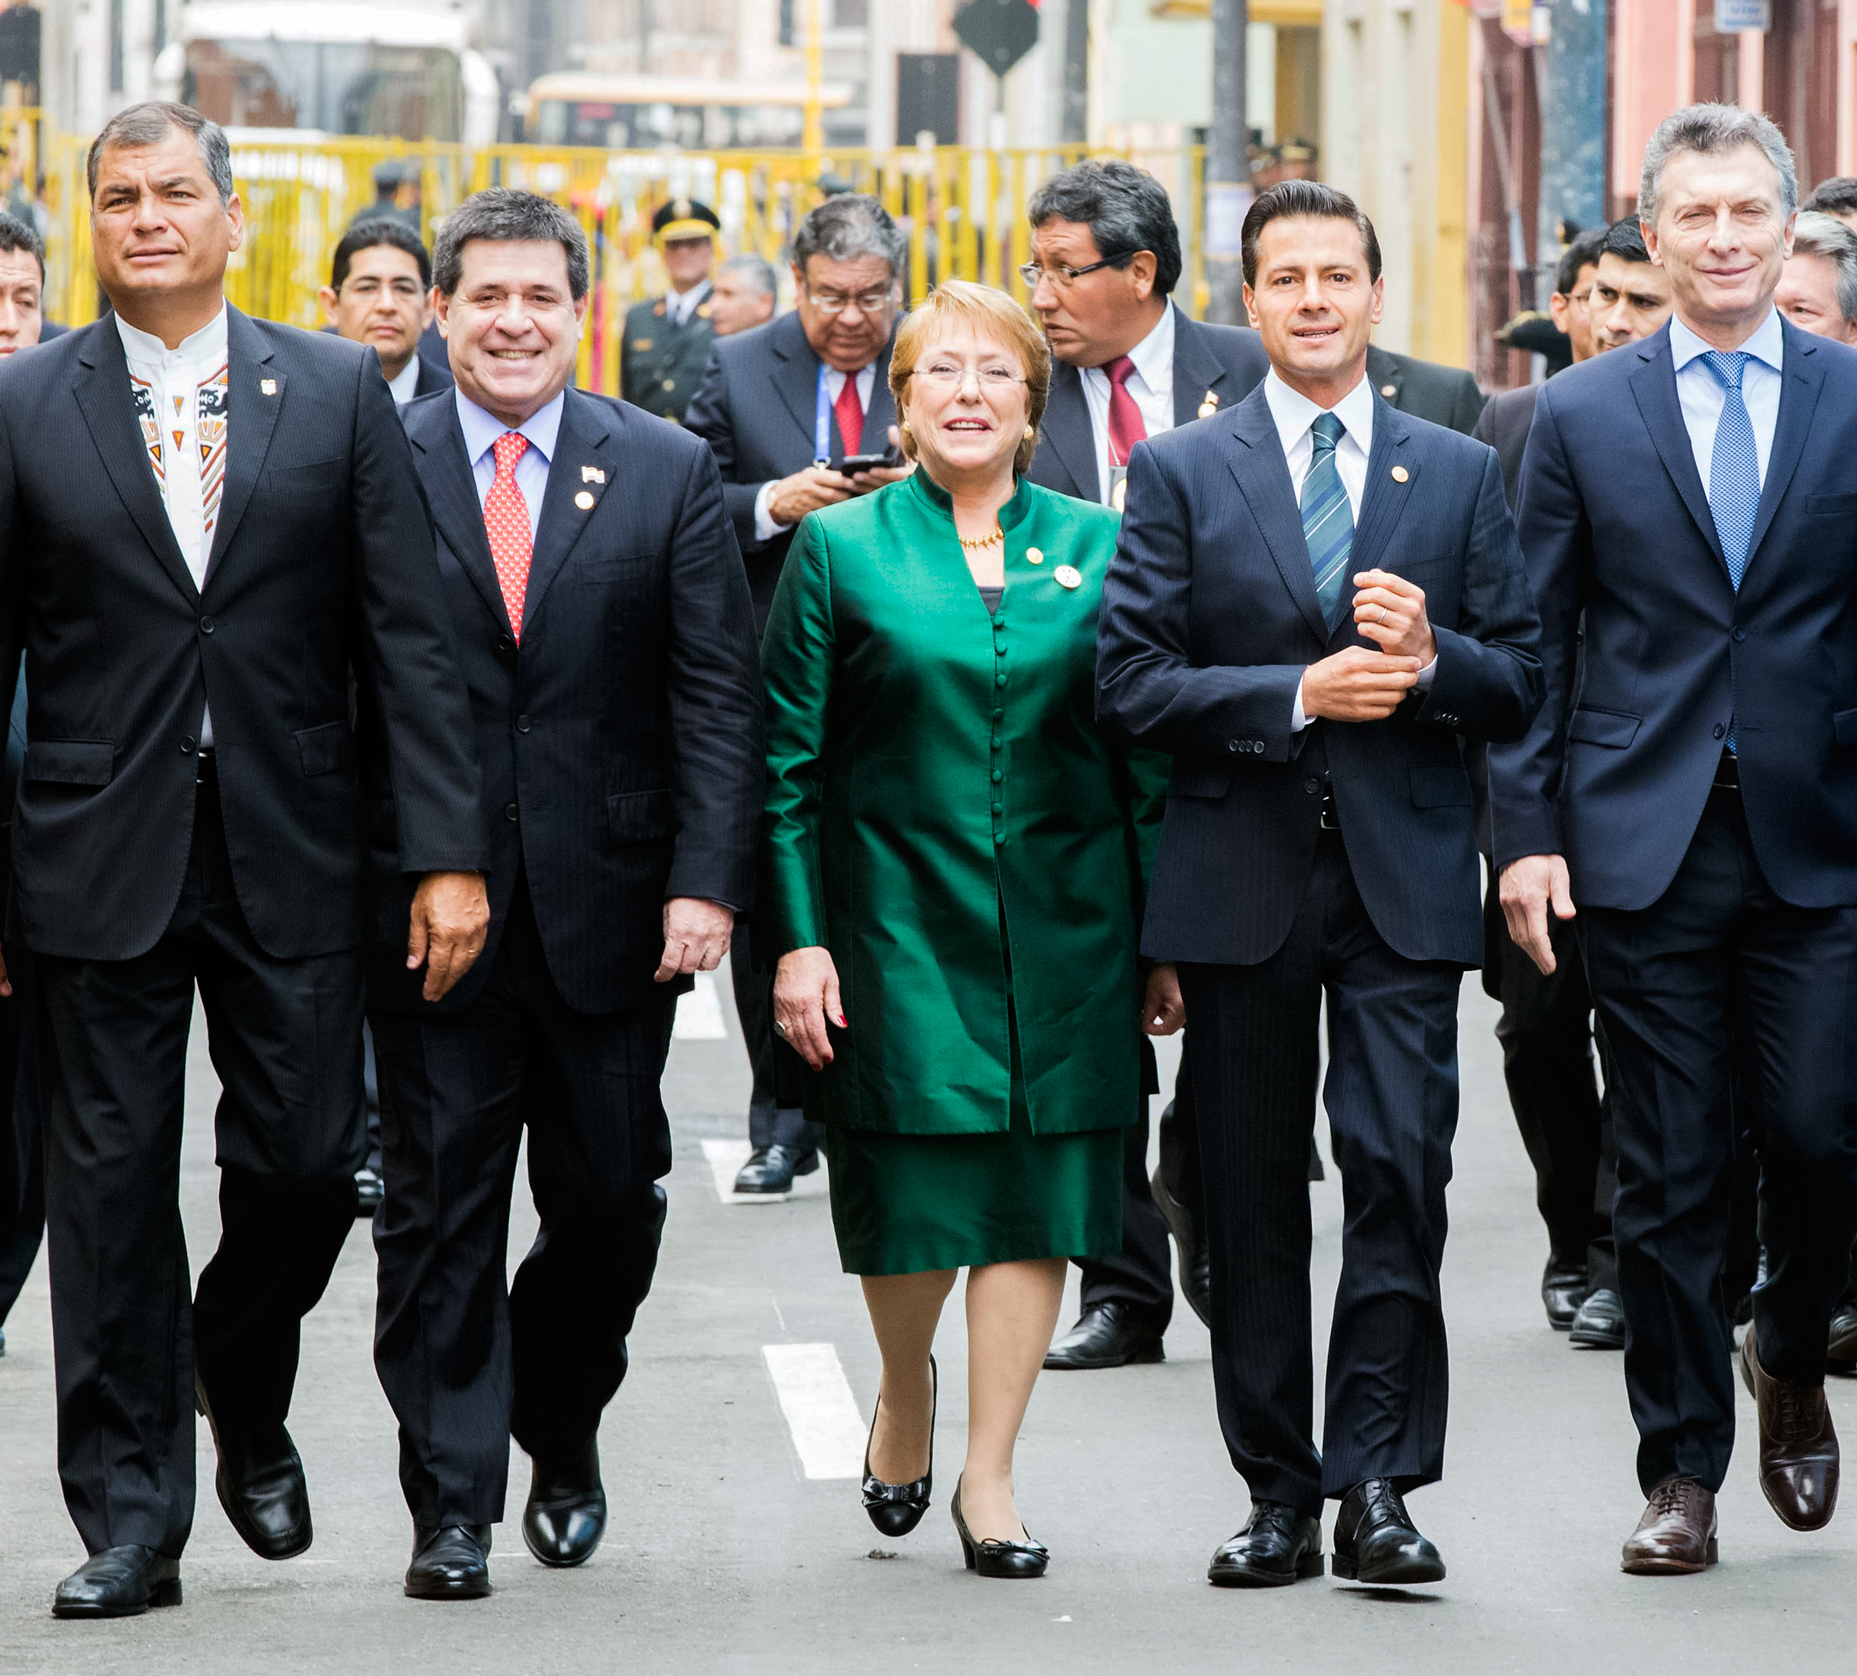 /cms/uploads/image/file/237948/Jul28_CeremoniaTransmisio_nDelMandoSupremoPeru_.jpg